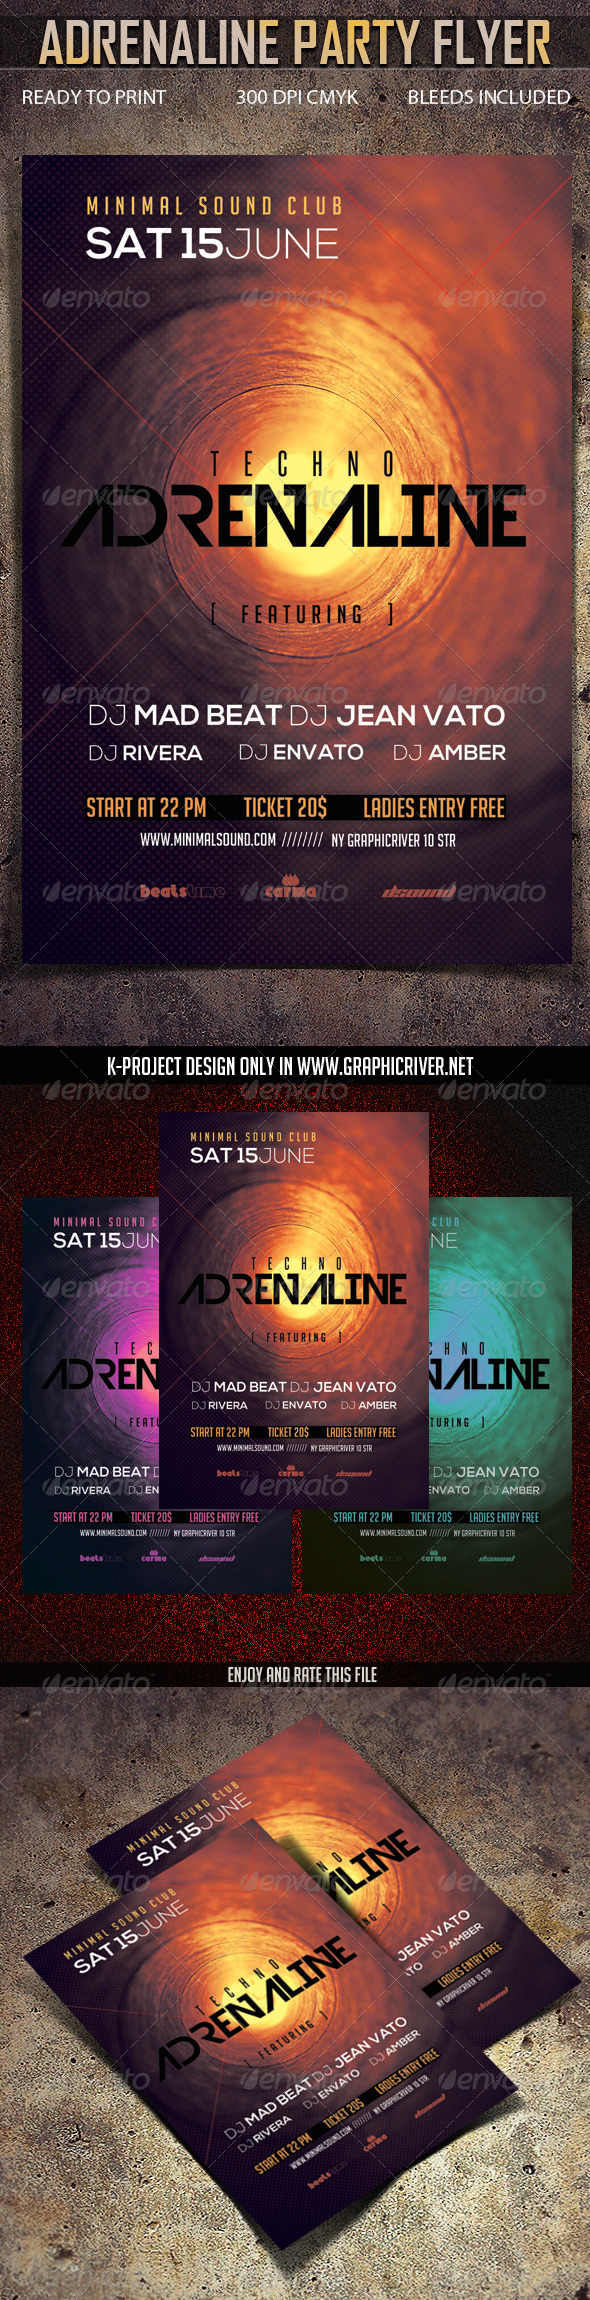 Adrenaline Party Flyer - Clubs & Parties Events